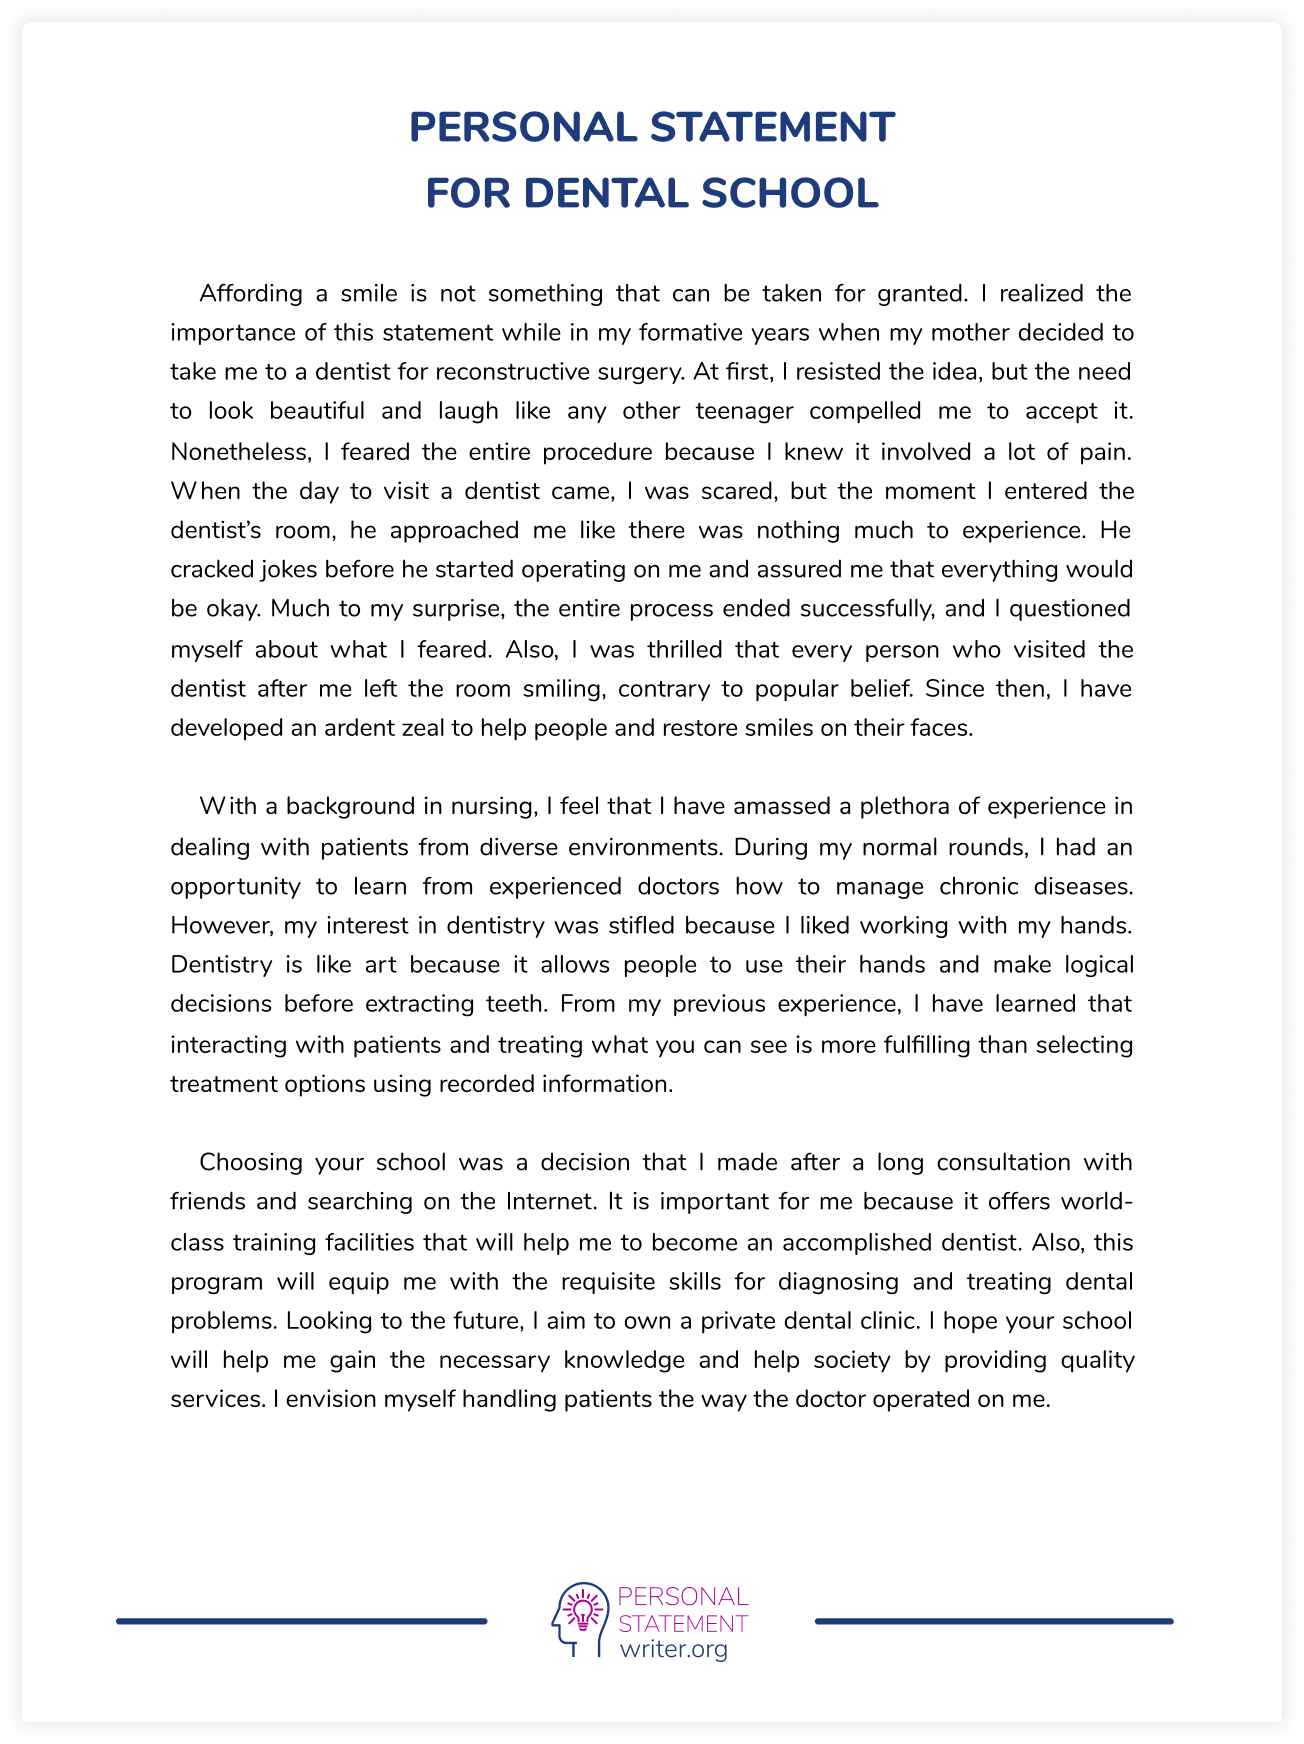 Custom personal statement editing sites for masters cheap argumentative essay proofreading services ca